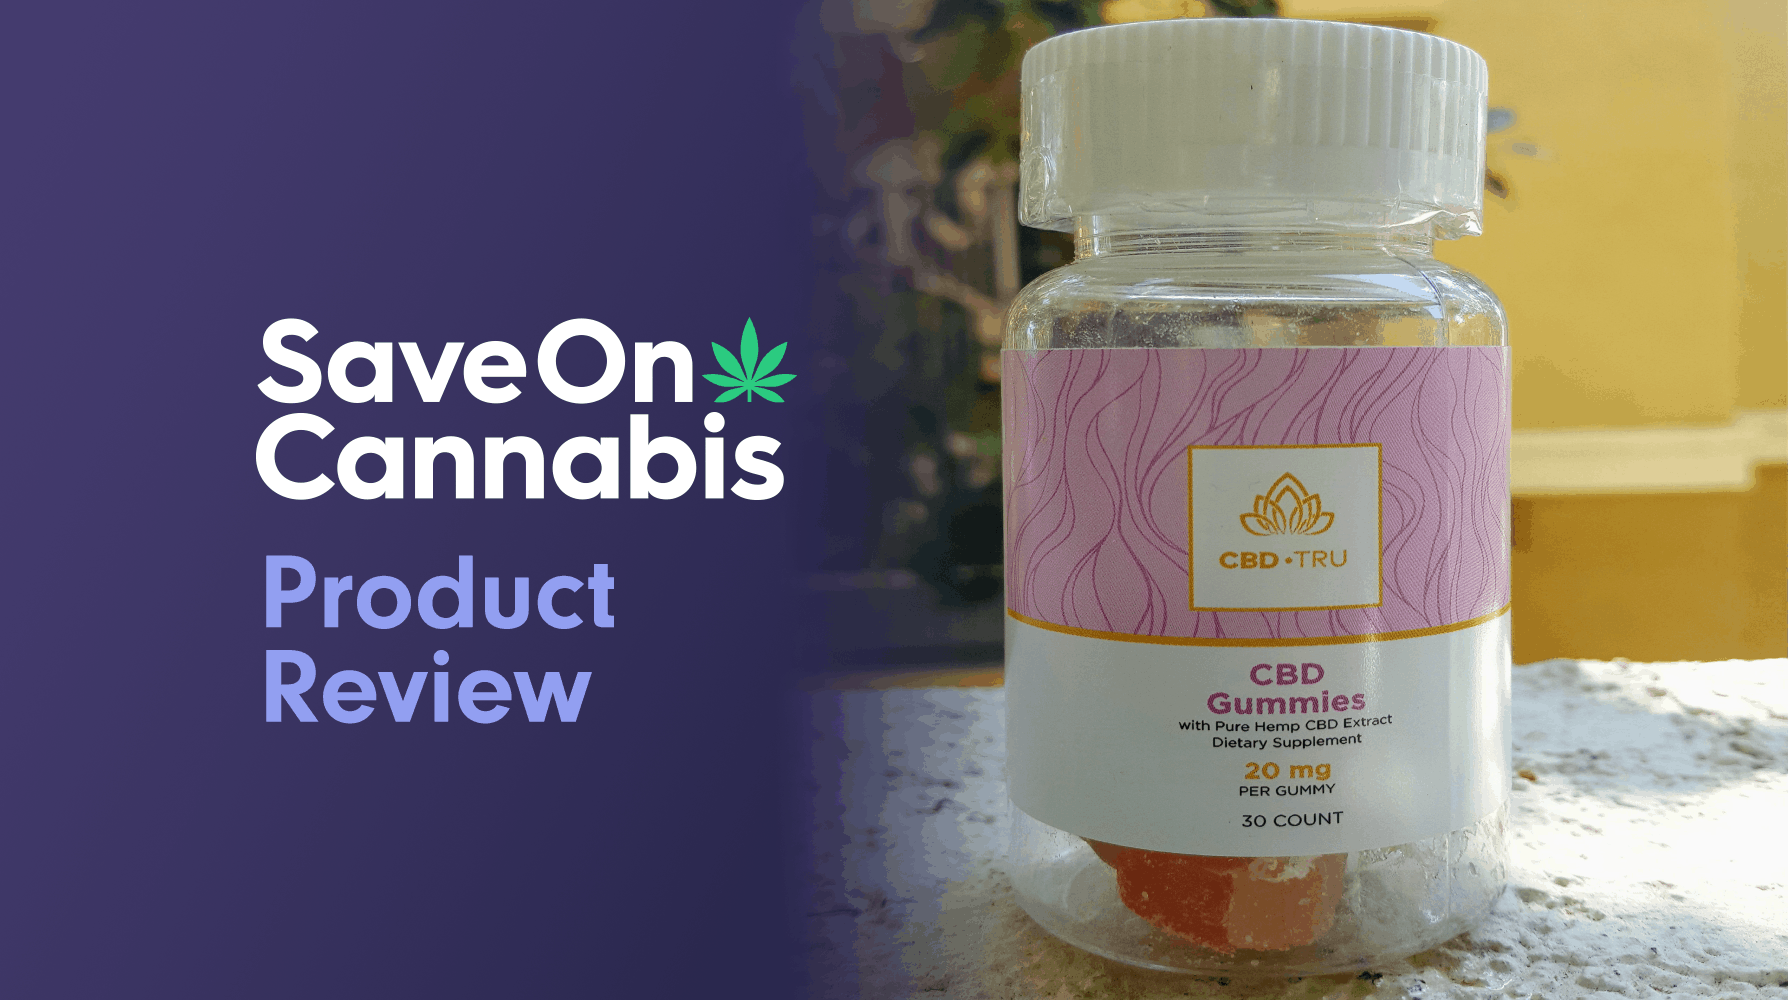 CBD Tru Reveiw Gummies save on cannabis website